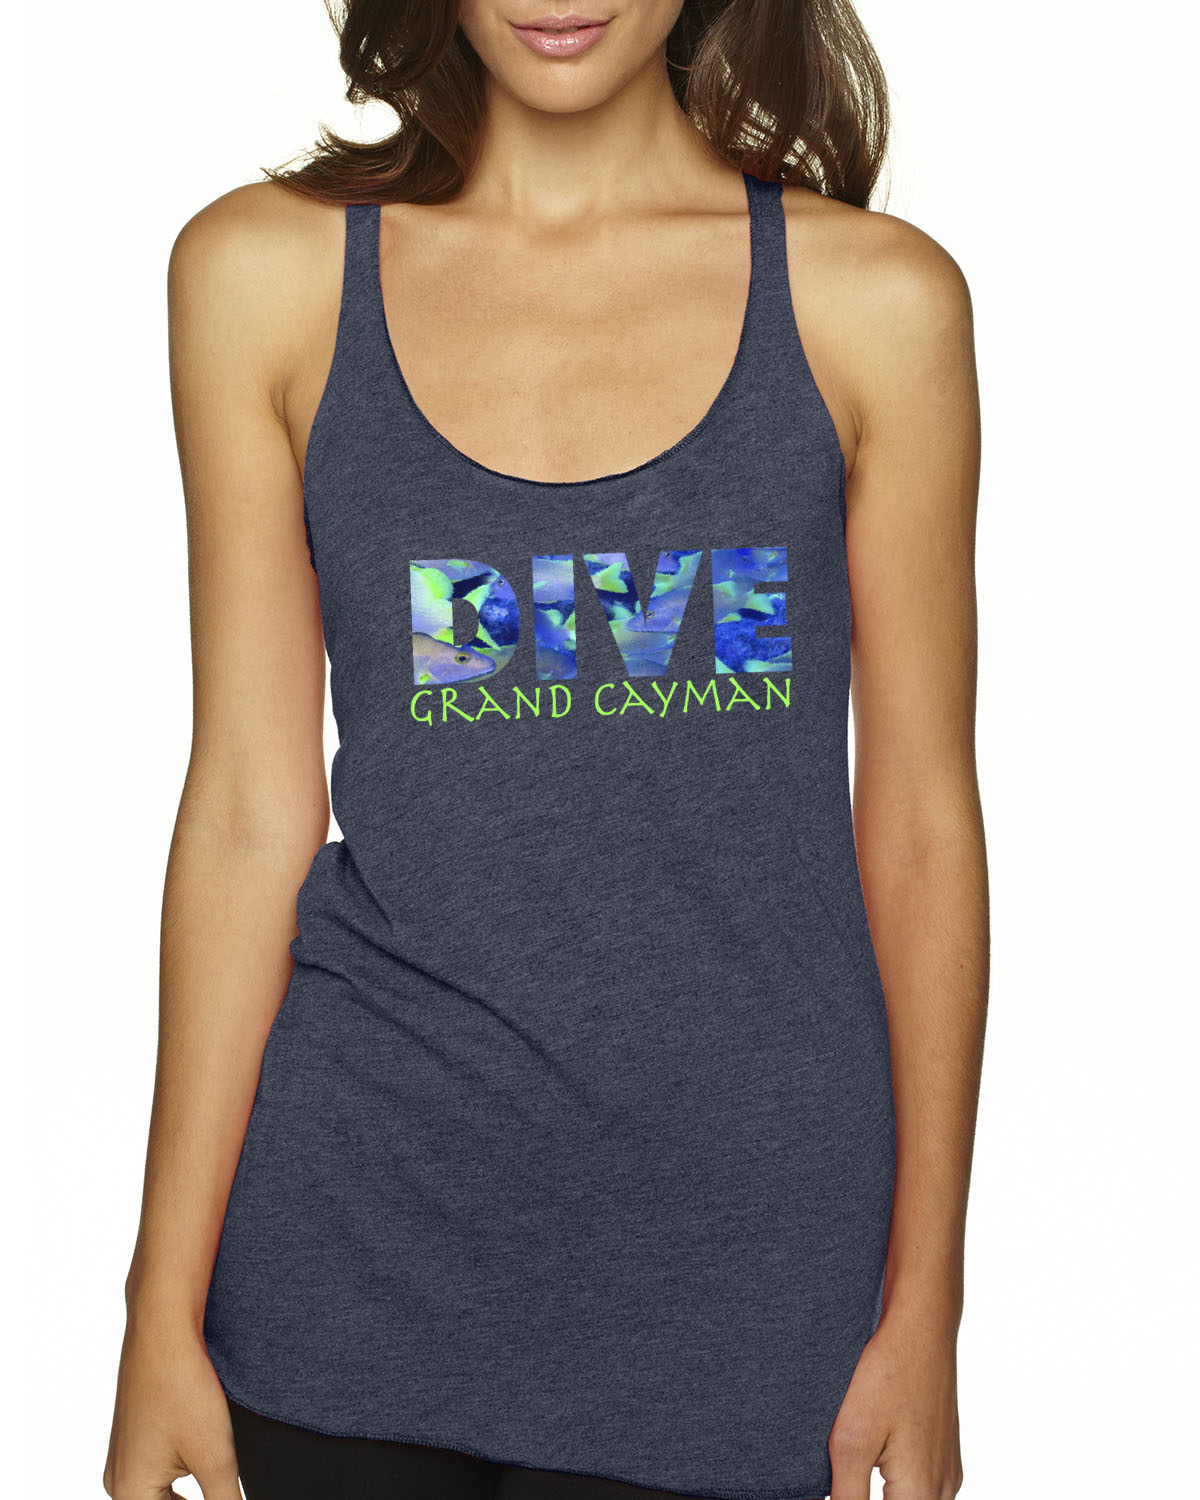 Women's Tri-blend racer-back DIVE scuba diving tank top (Indigo)